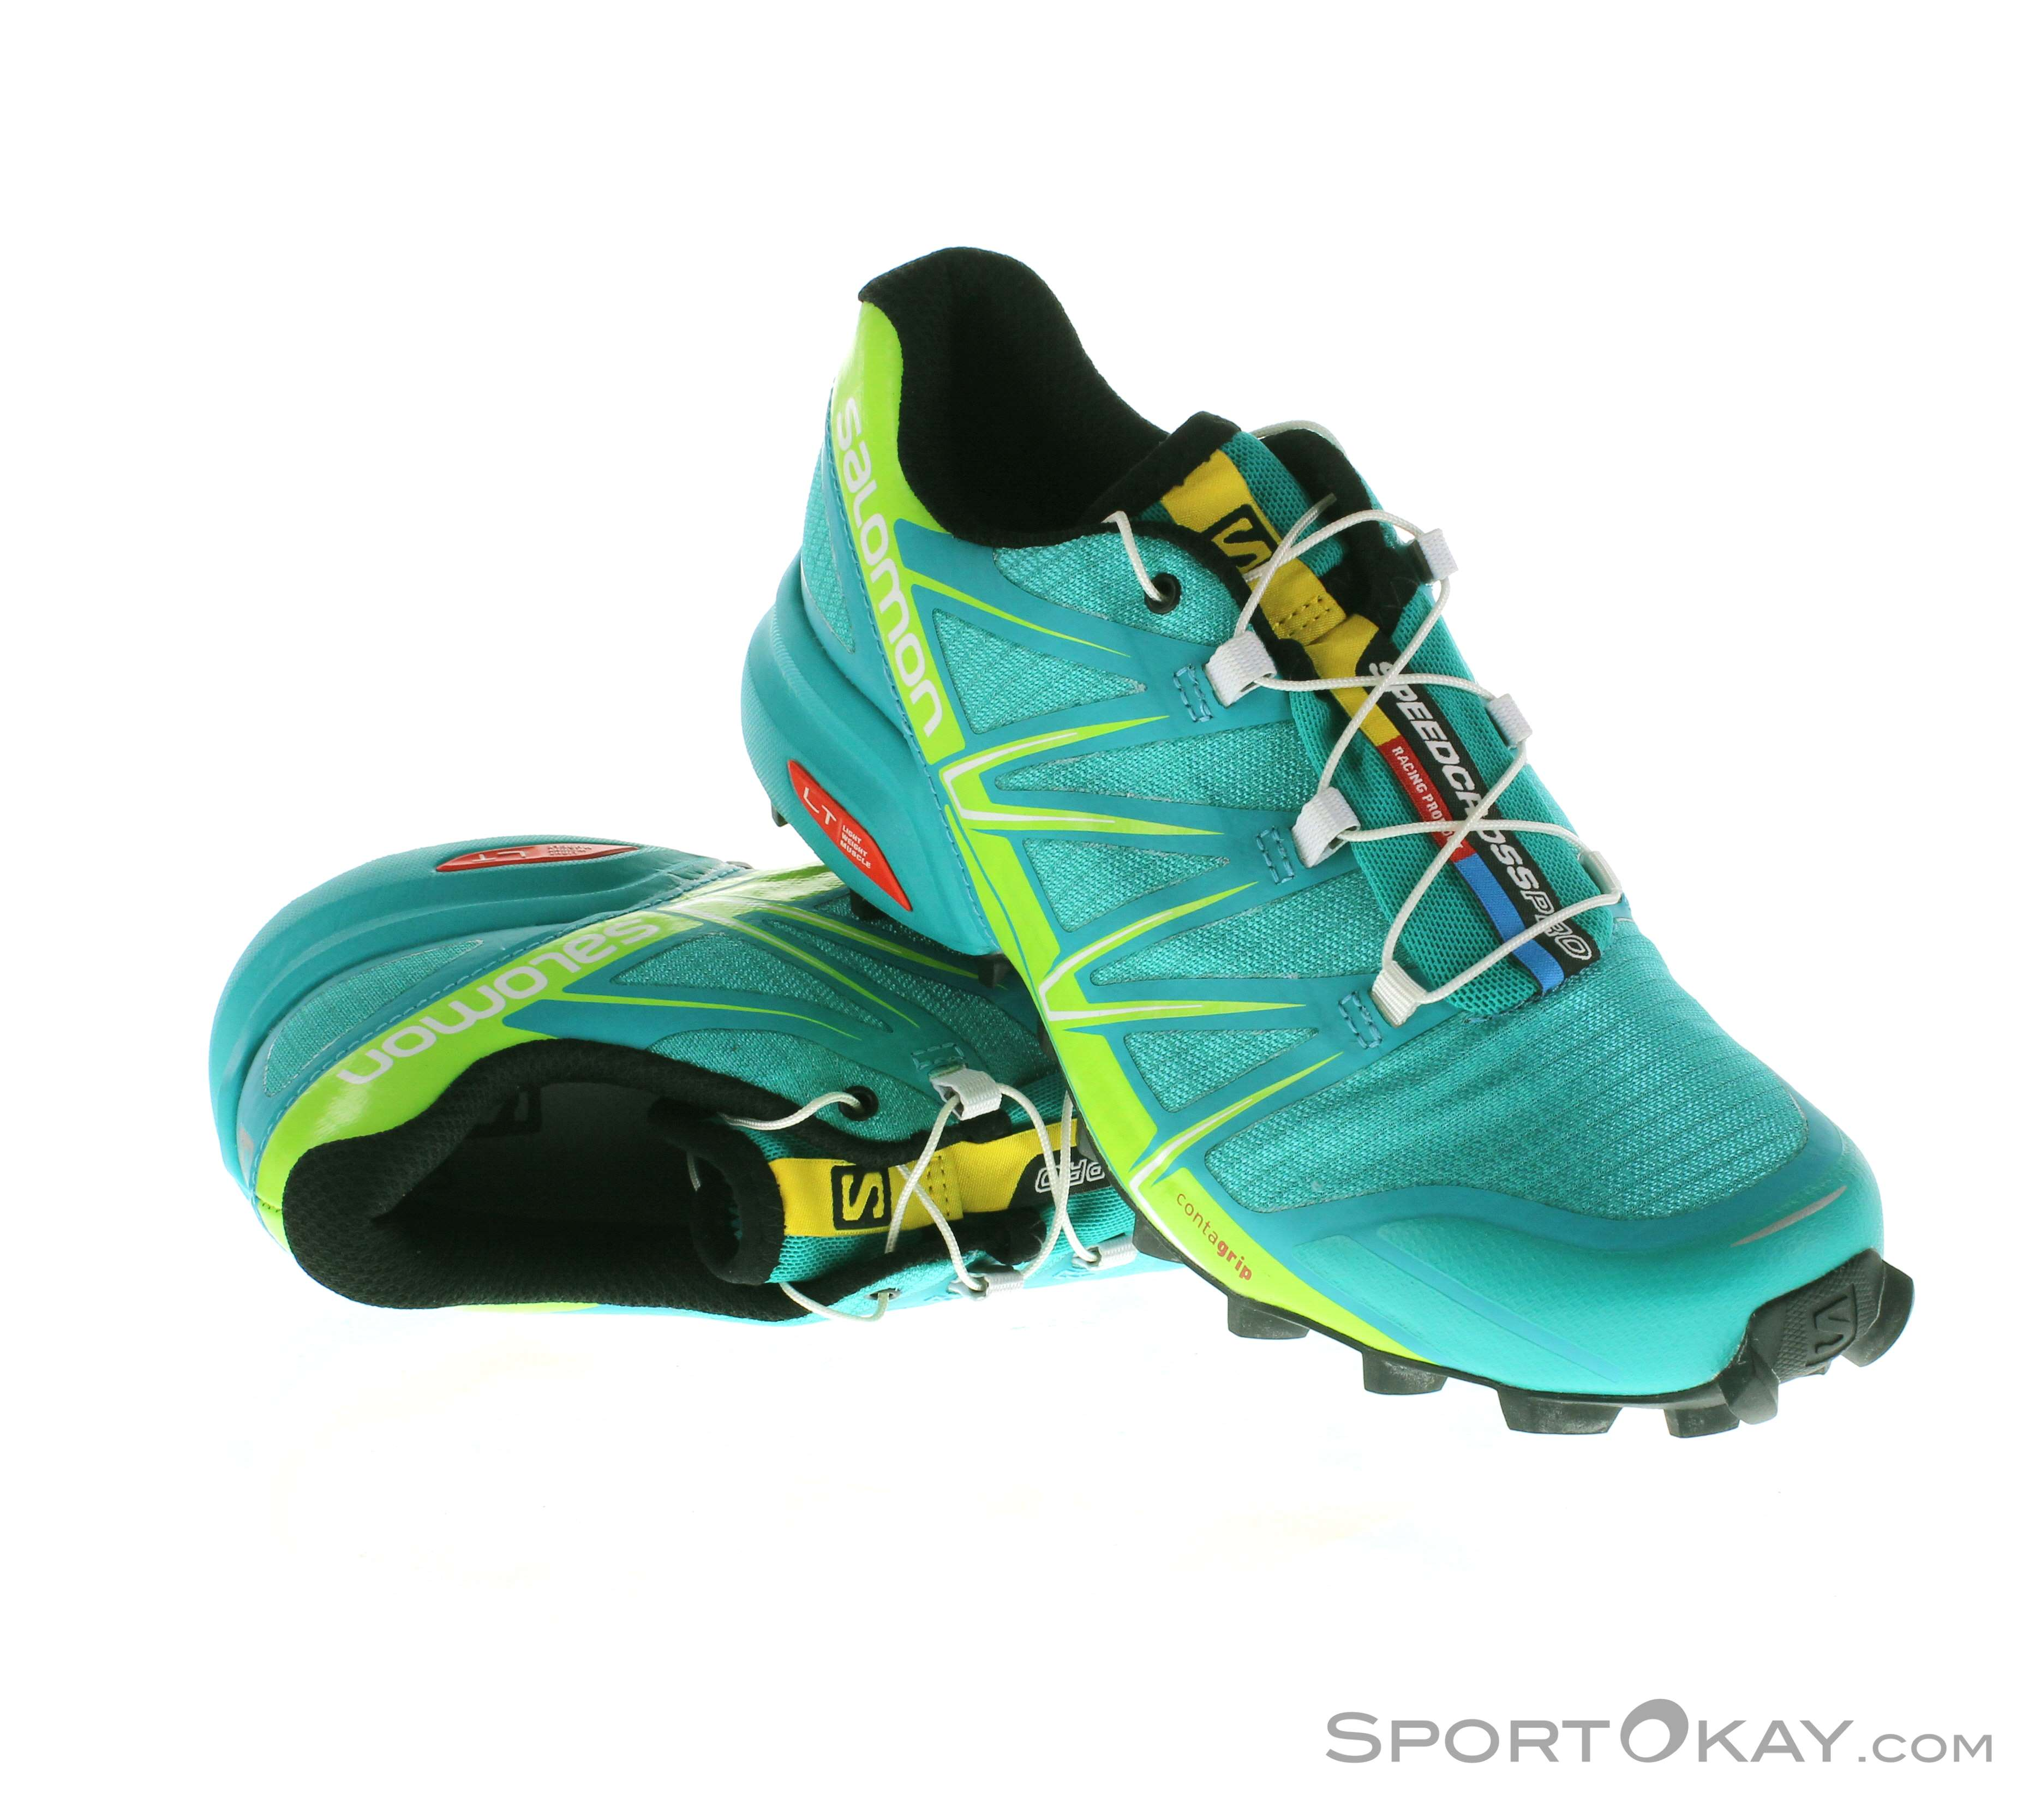 best sneakers f19cb cd5c8 Salomon Salomon Speedcross 3 Pro Womens Trail Running Shoes